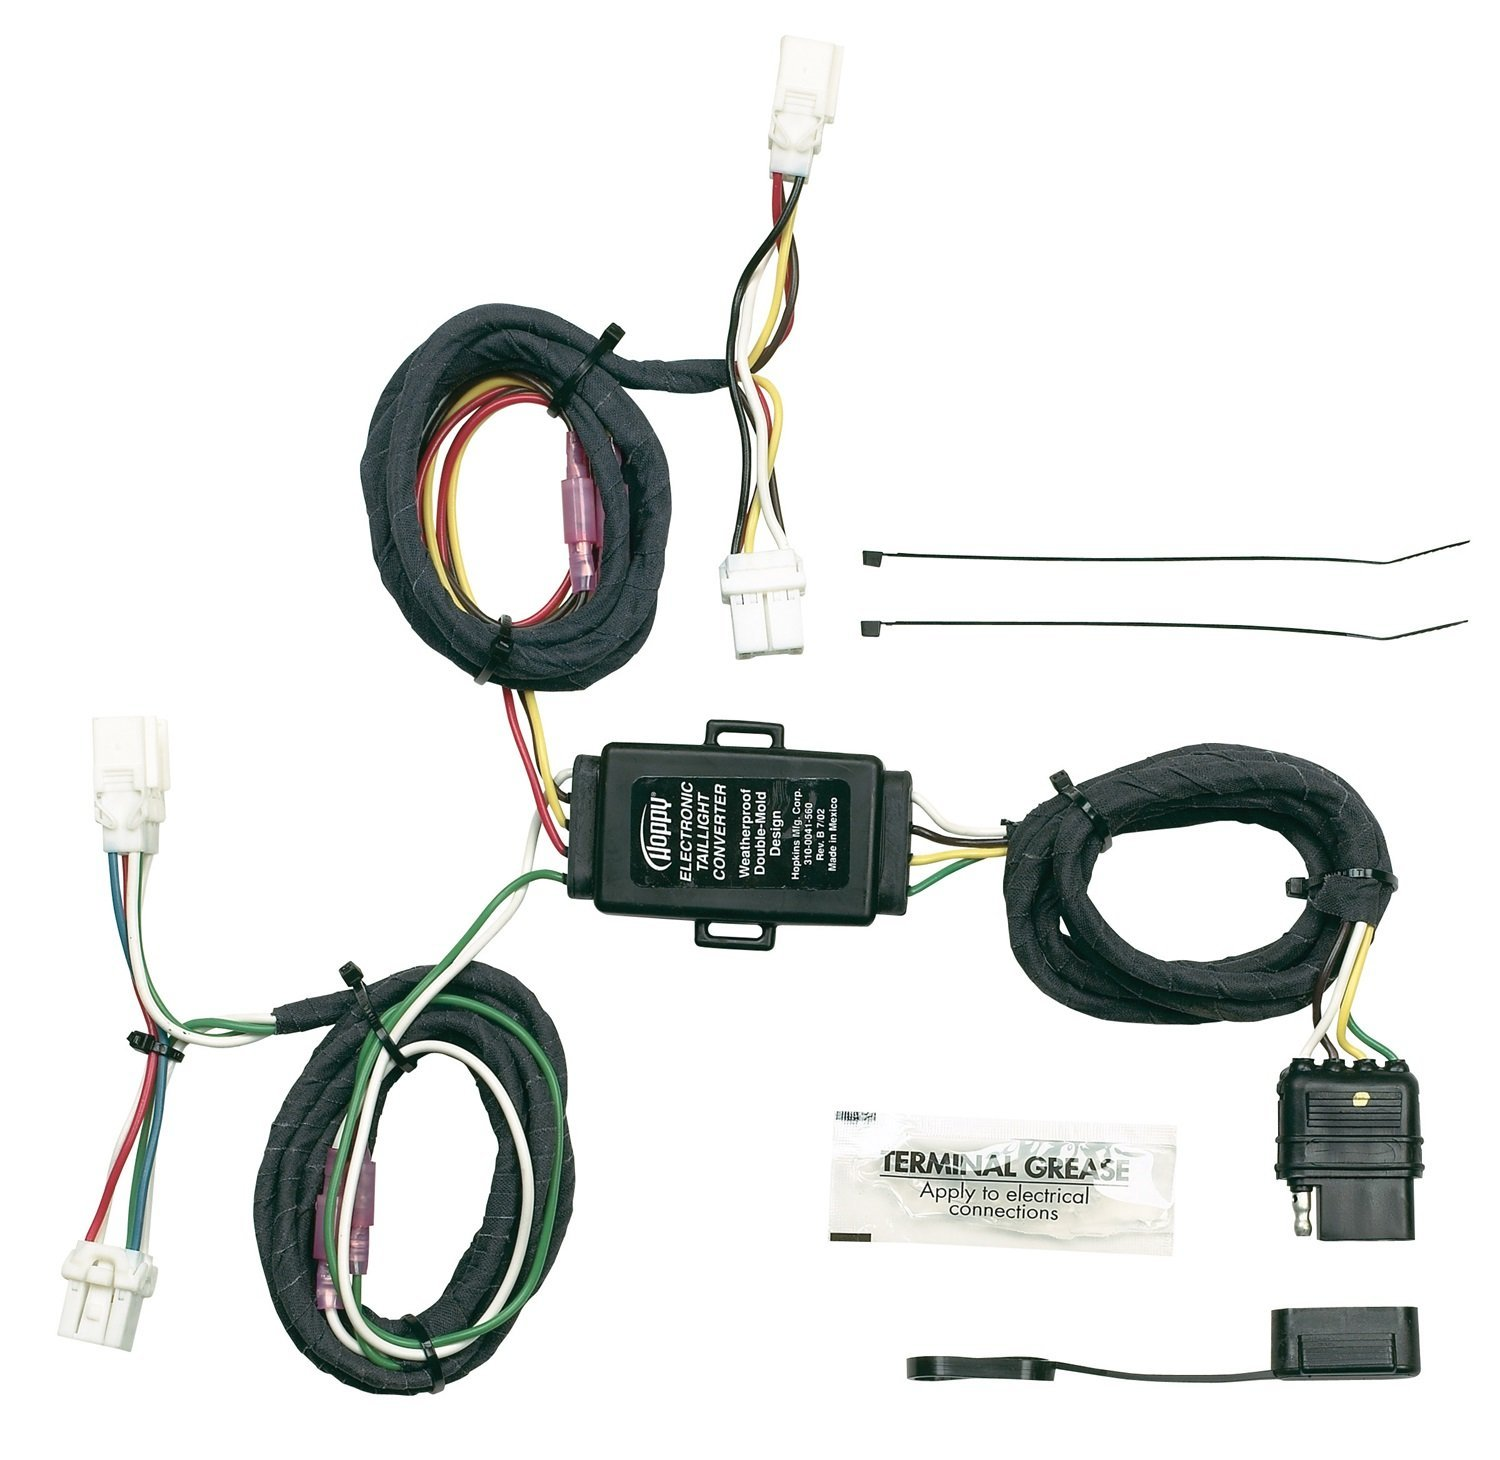 Hopkins 43565 Plug-In Simple Vehicle Wiring Kit, T-Connectors allow you to  connect your trailer's wiring system into your vehicle's wiring.., ...